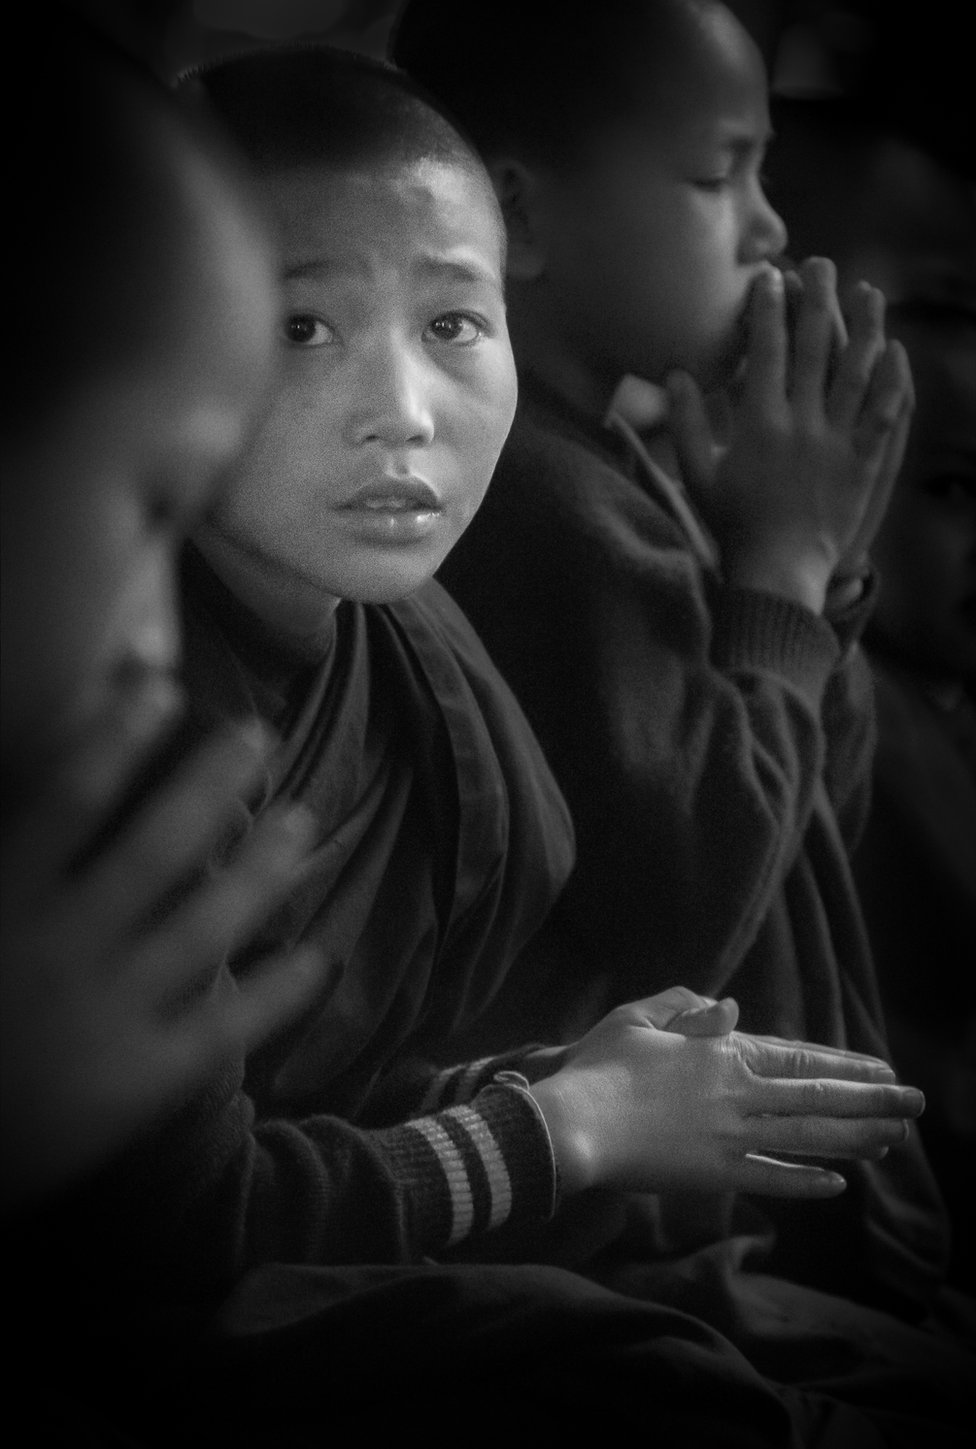 A Novice Monk sits amongst his fellow devotees at Prayer in a remote Monastery near Hsipaw in Eastern Myanmar.